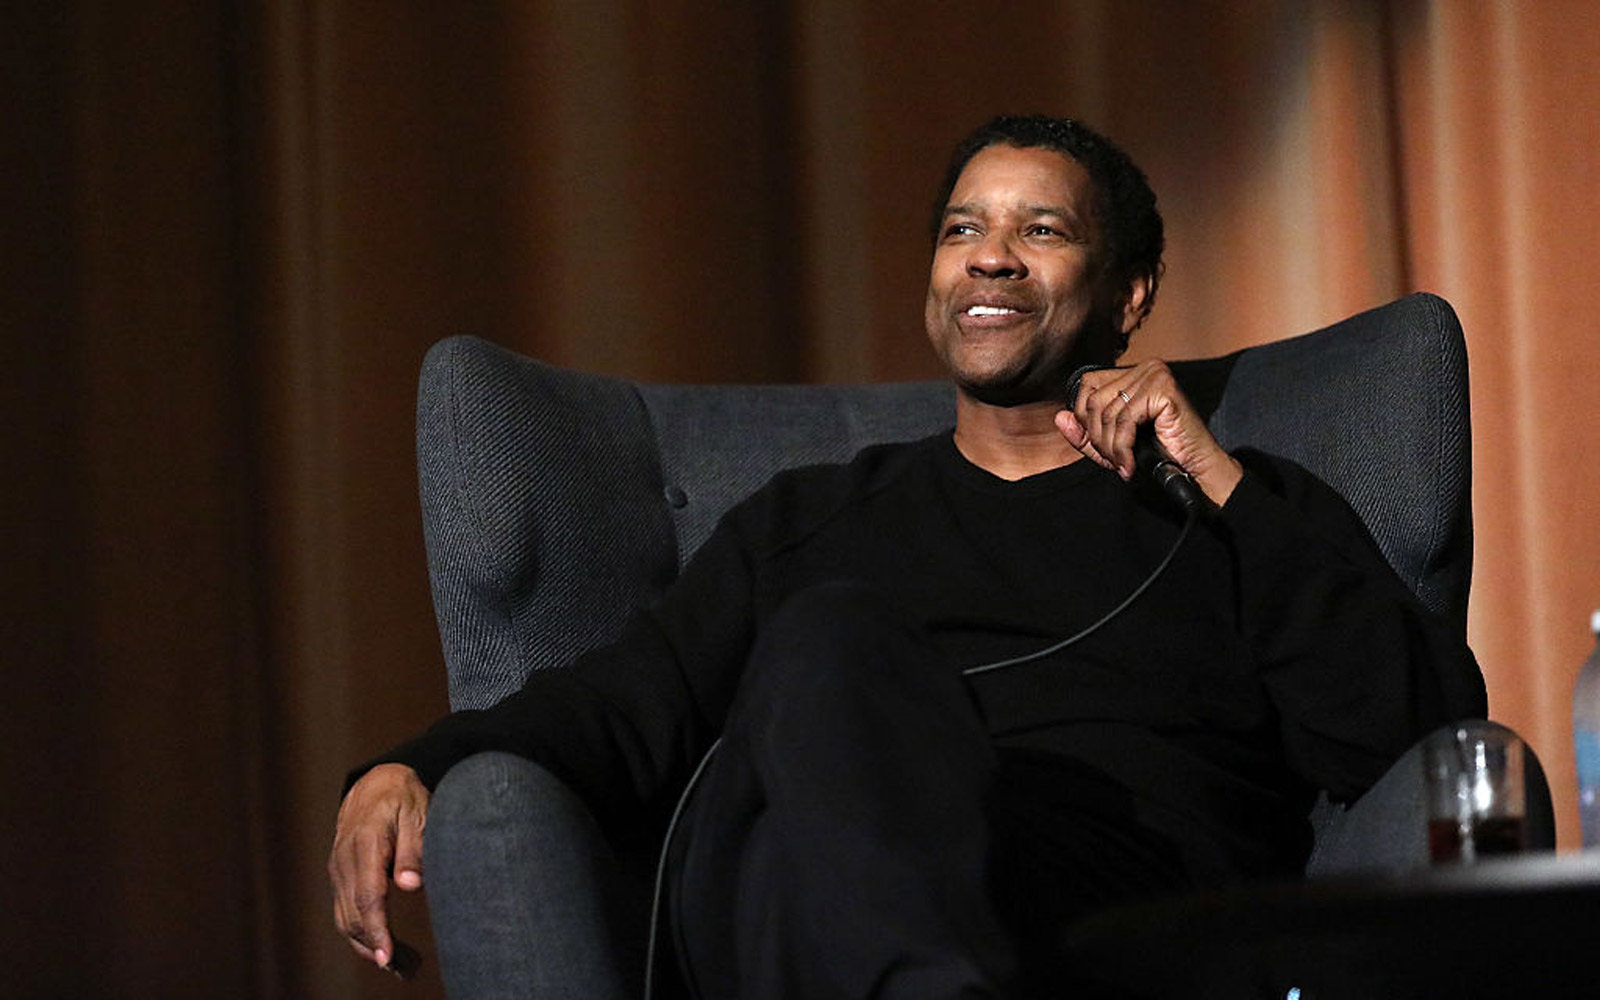 Denzel Washington Got Lost in Chicago and Ended Up Meeting His Biggest Fan